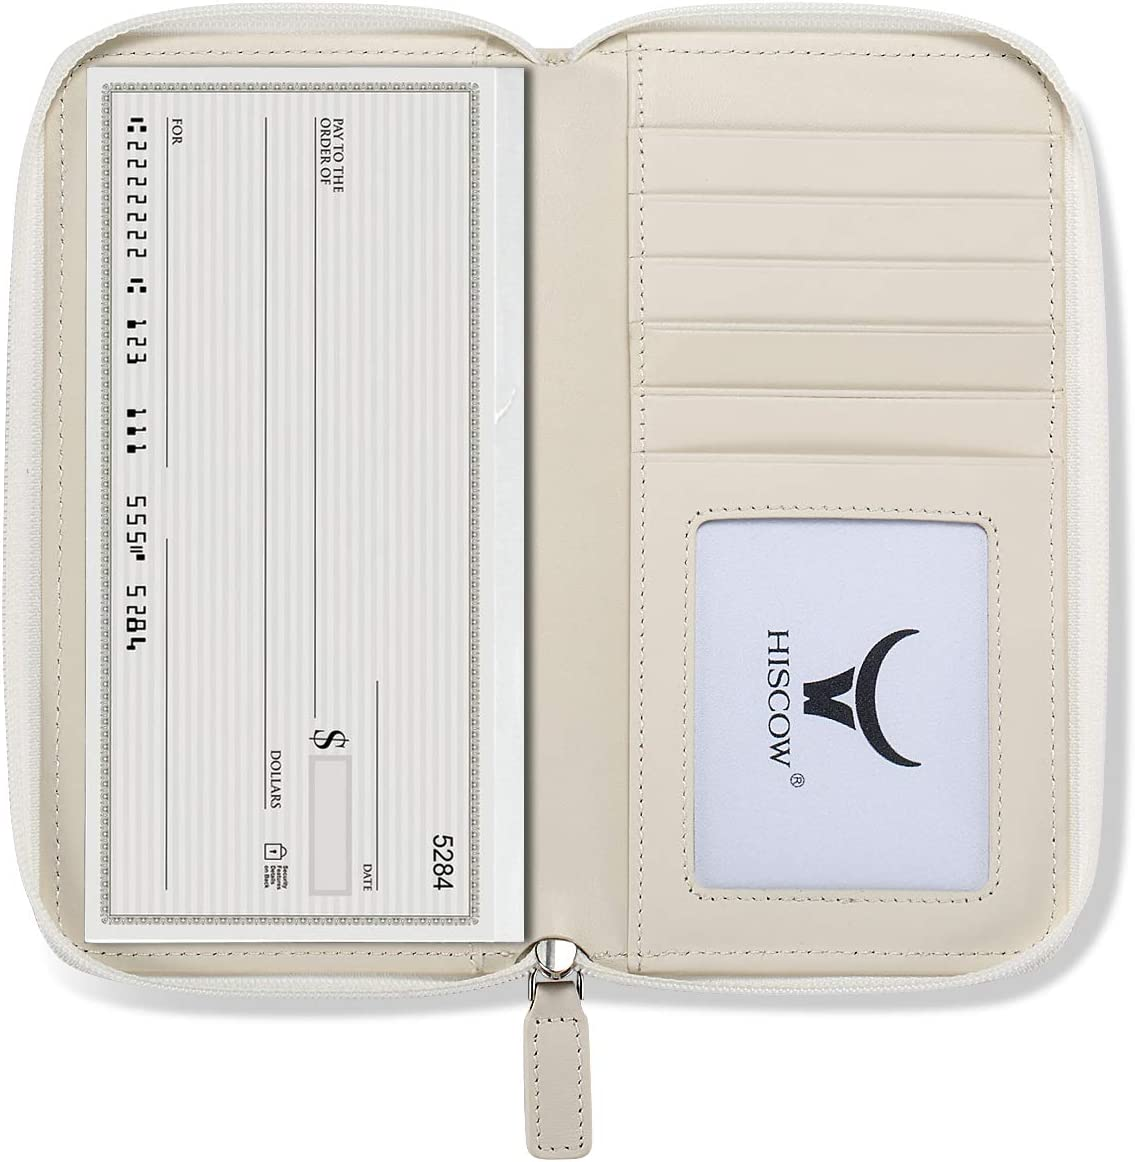 HISCOW Zippered Checkbook Cover Card Max 87% OFF - Ita Ranking integrated 1st place Divider Holder with